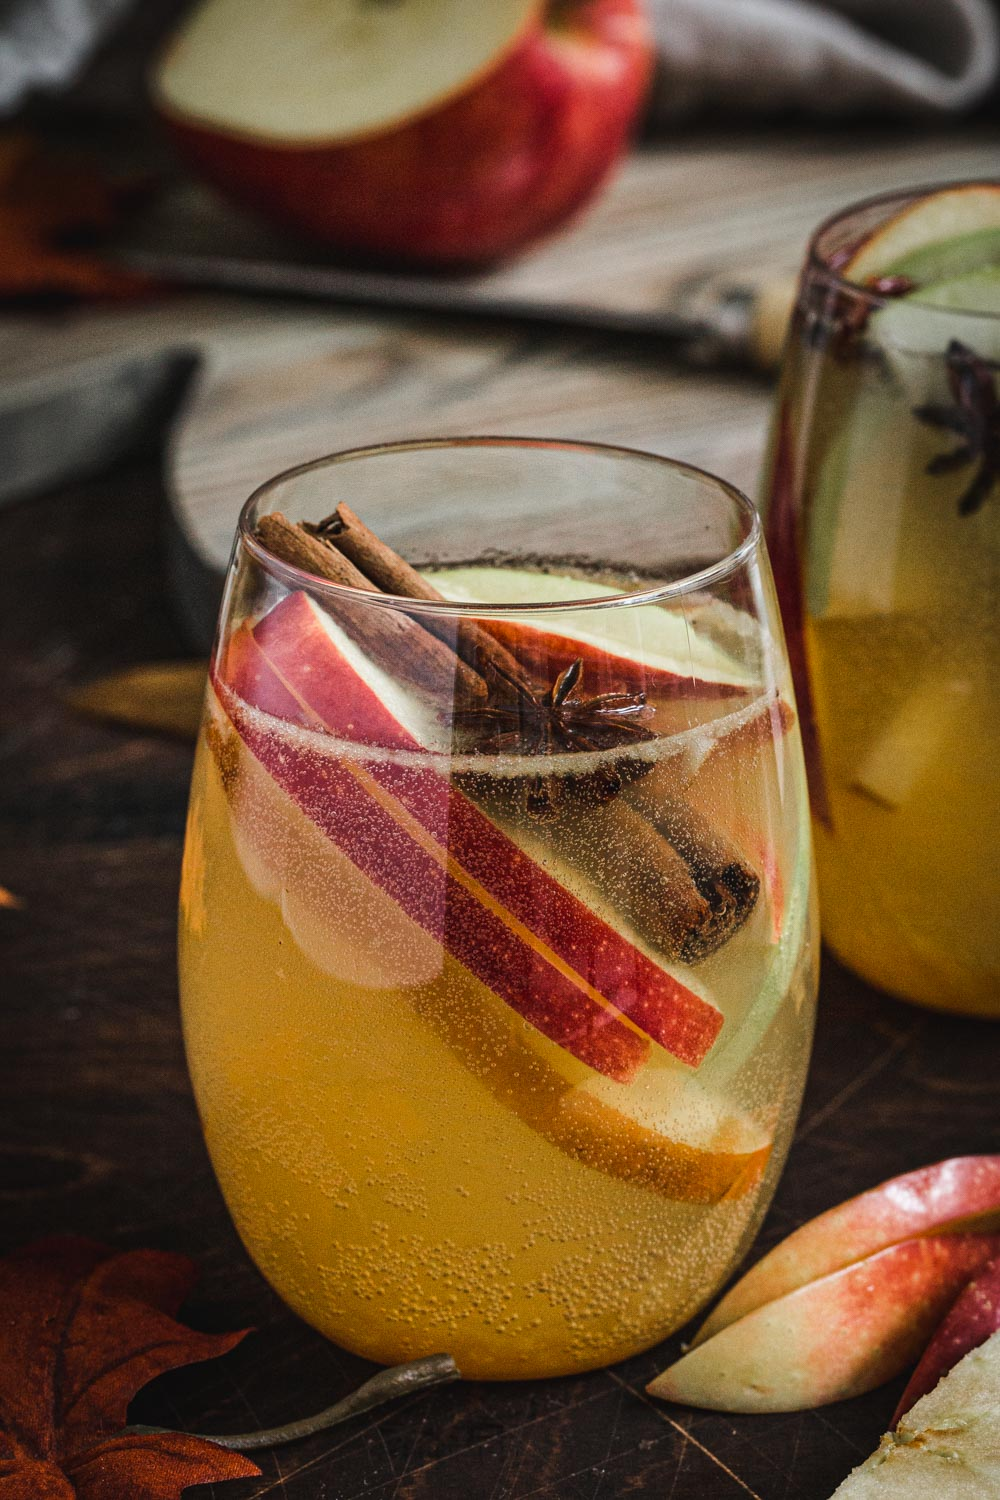 Caramel apple cider sangria with apple slices, cinnamon stick, and star anise.